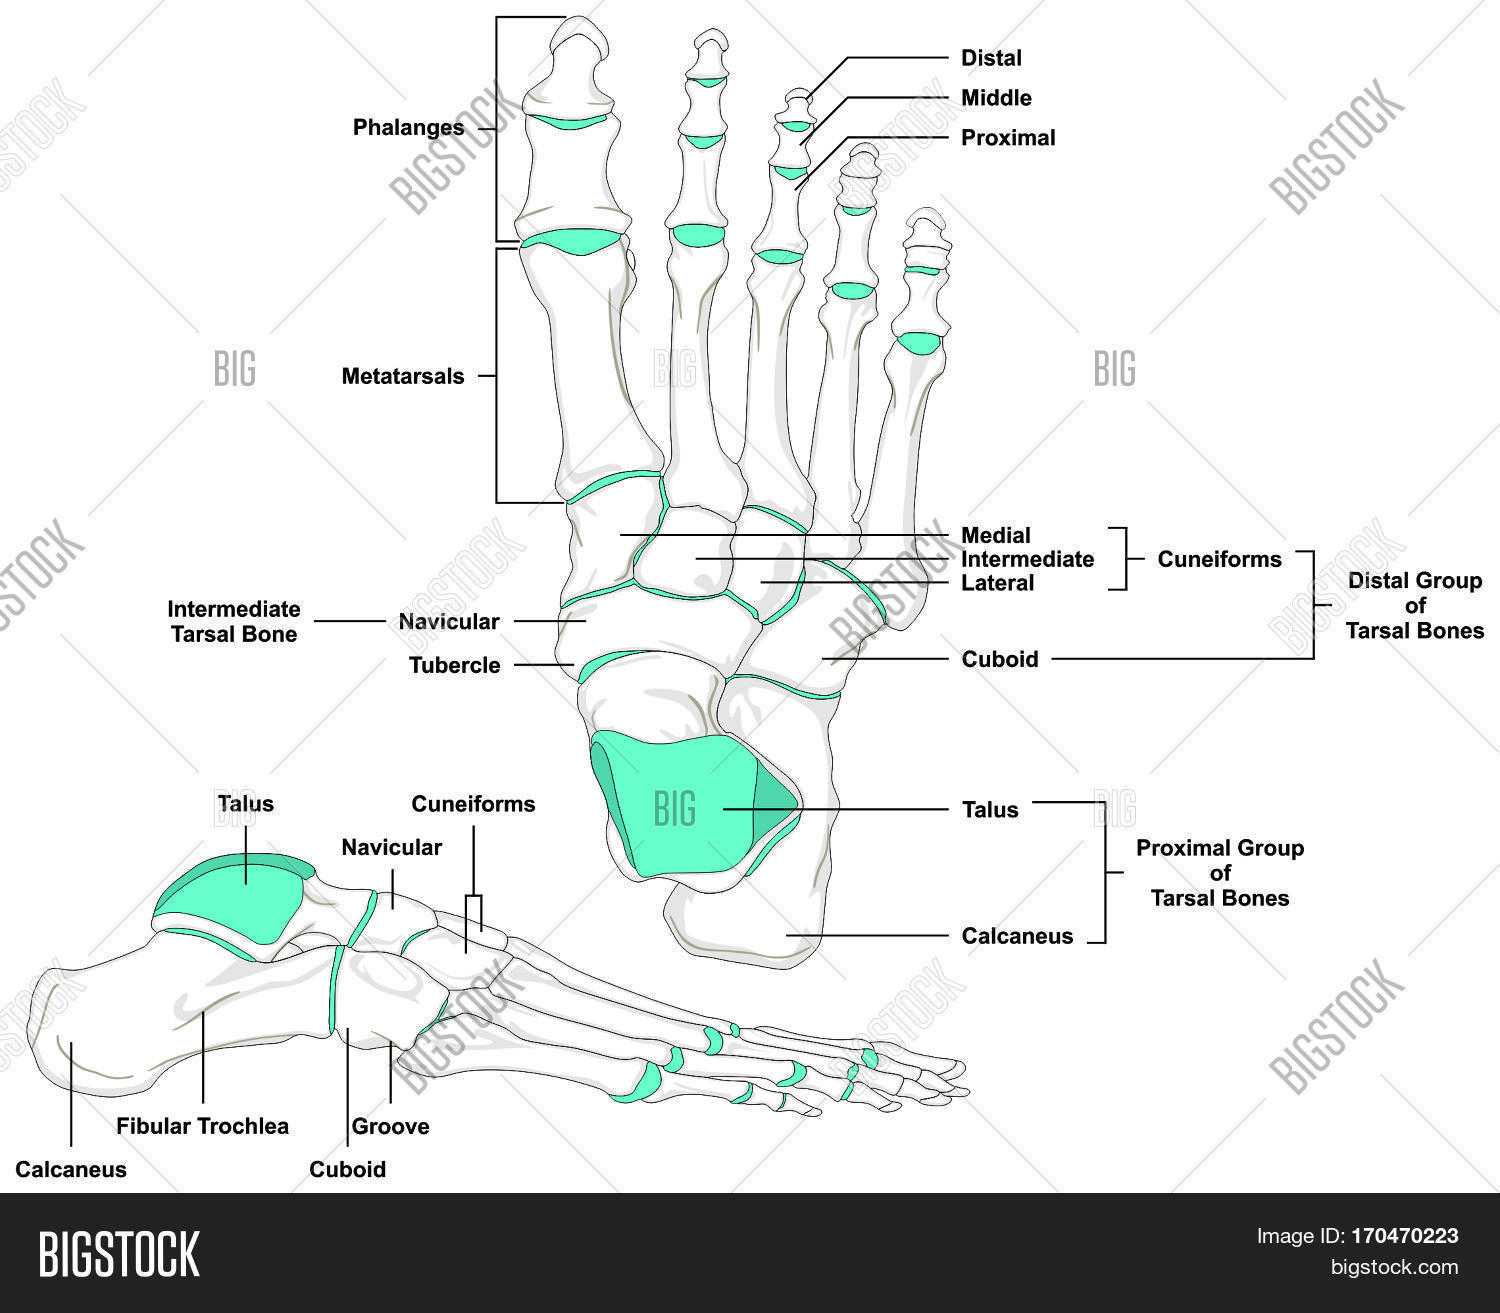 hight resolution of human foot bones anatomy diagram in anatomical position front and lateral view with all bone names